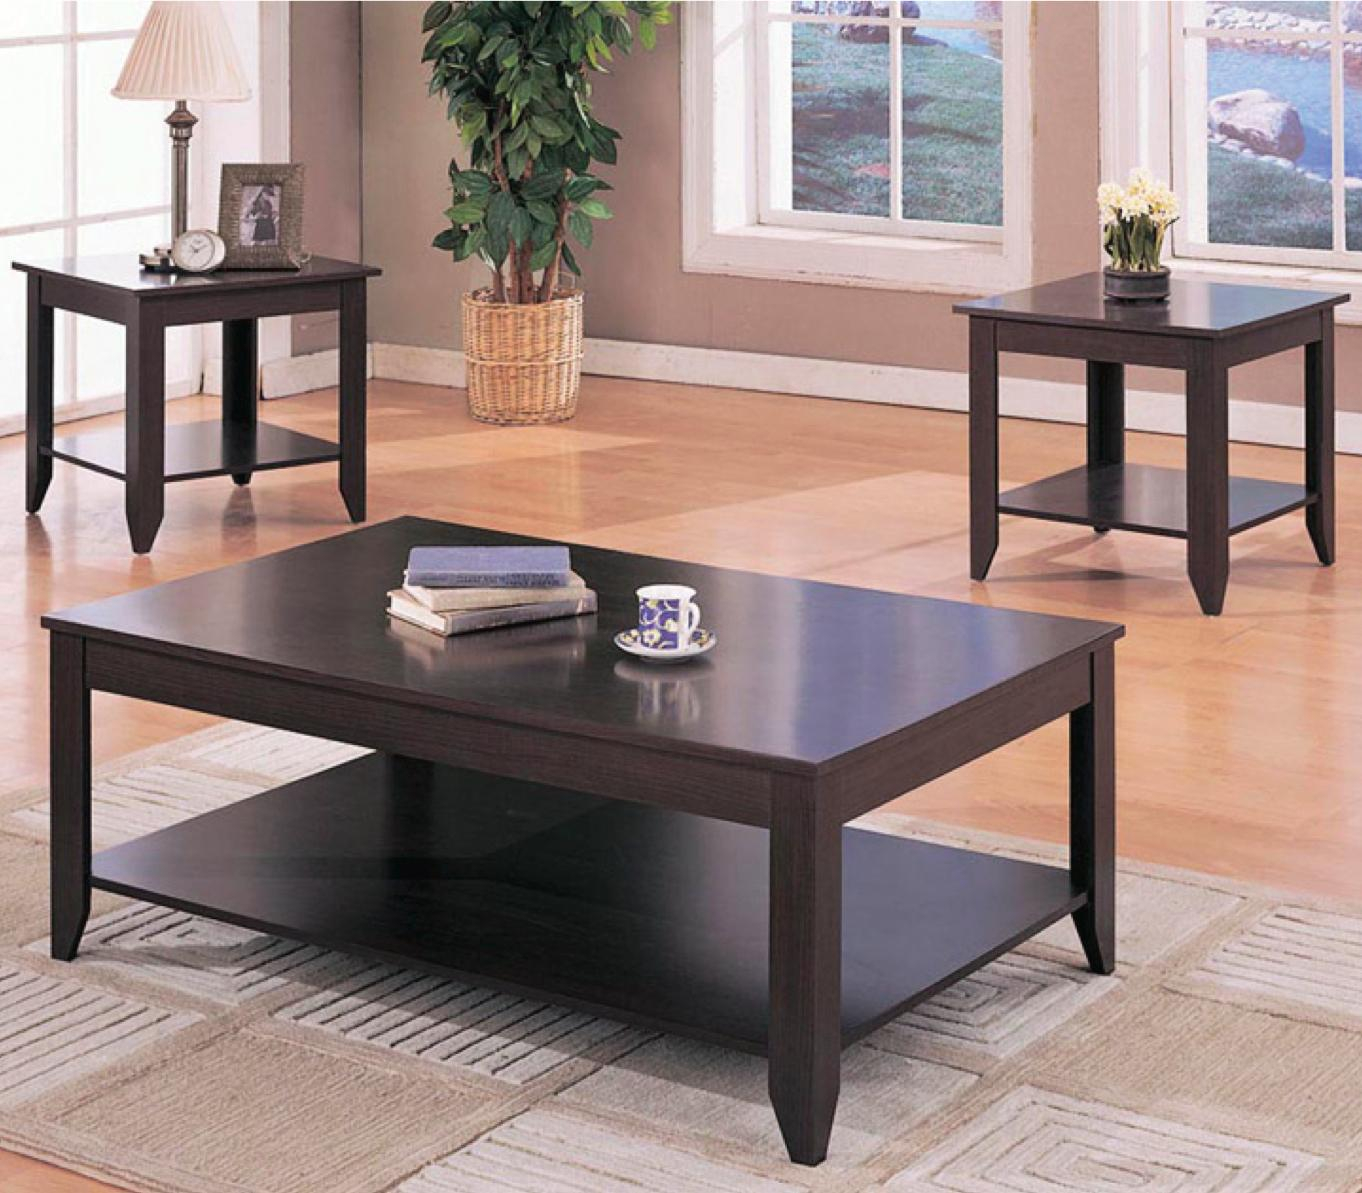 Coaster Occasional Table Sets 700285 Contemporary 3 Piece Occasional pertaining to size 1362 X 1193